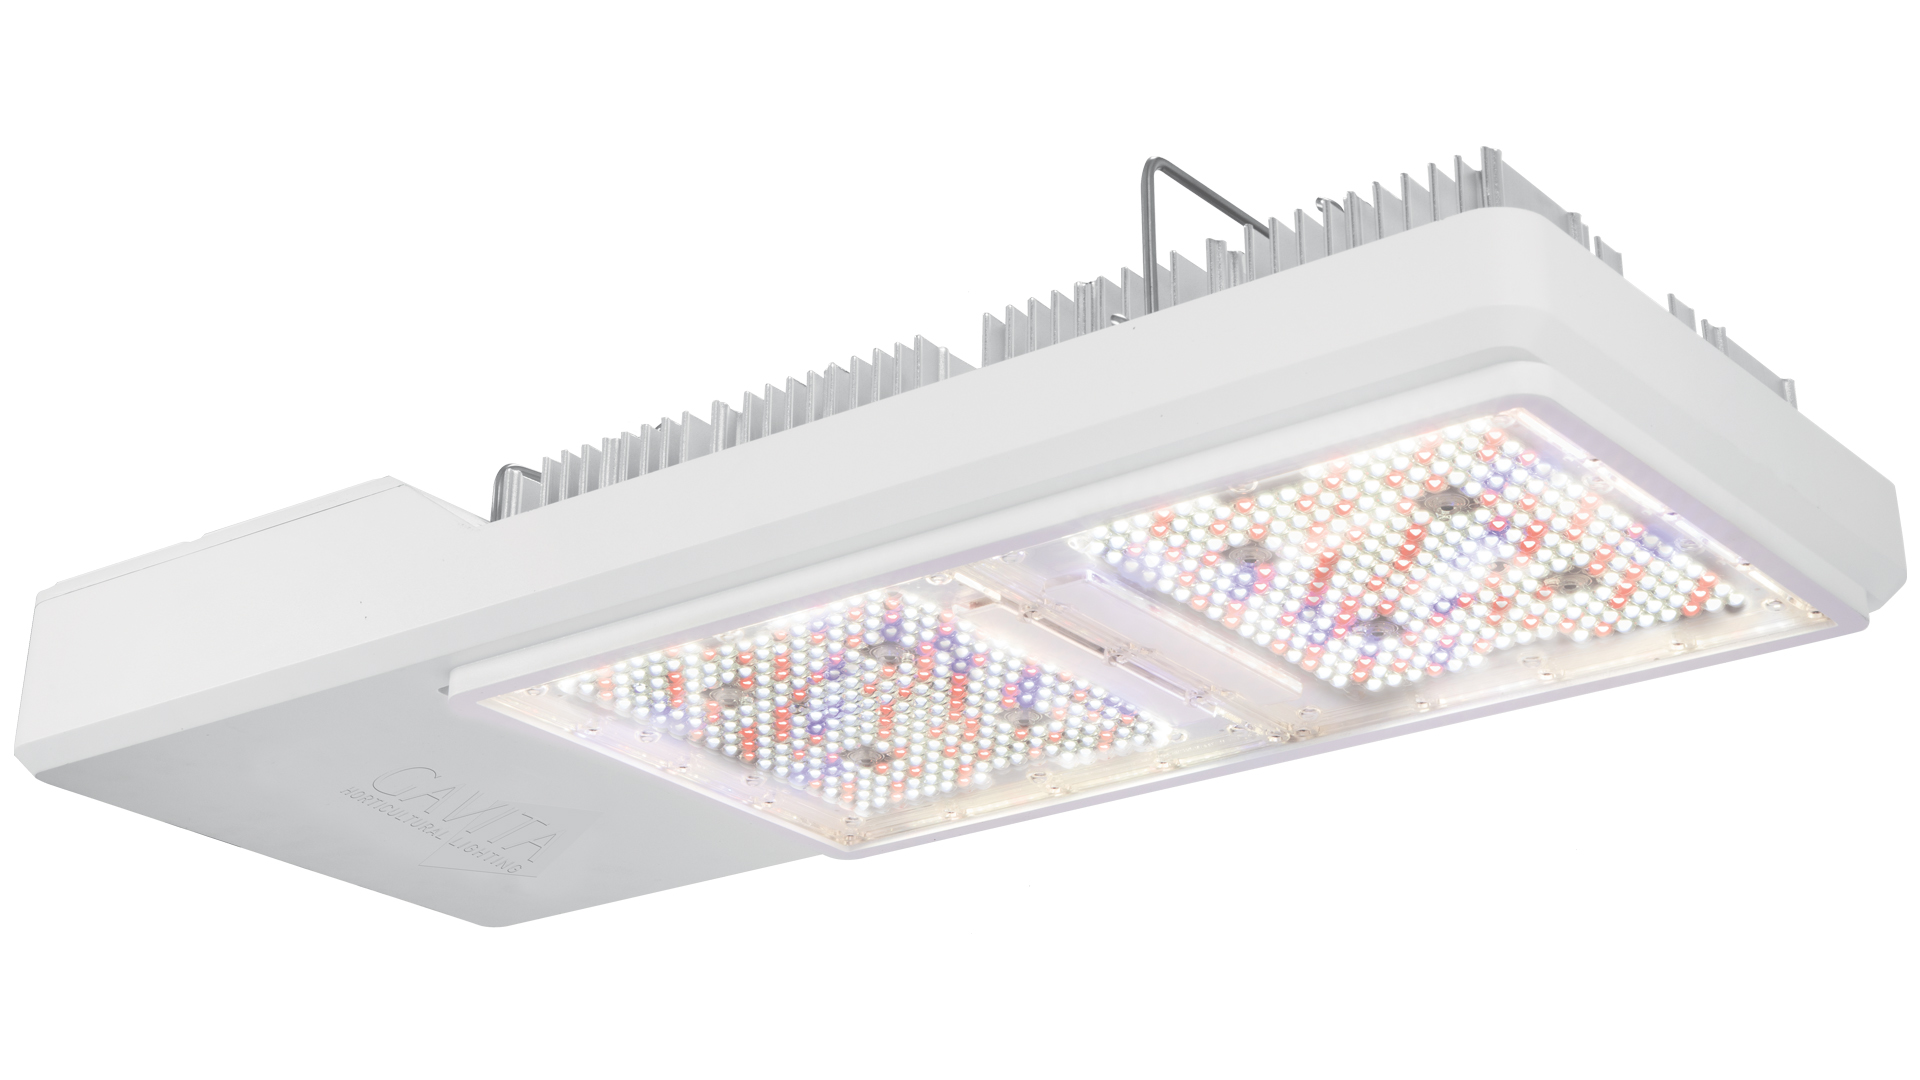 It's time to upgrade your grow lights to LED